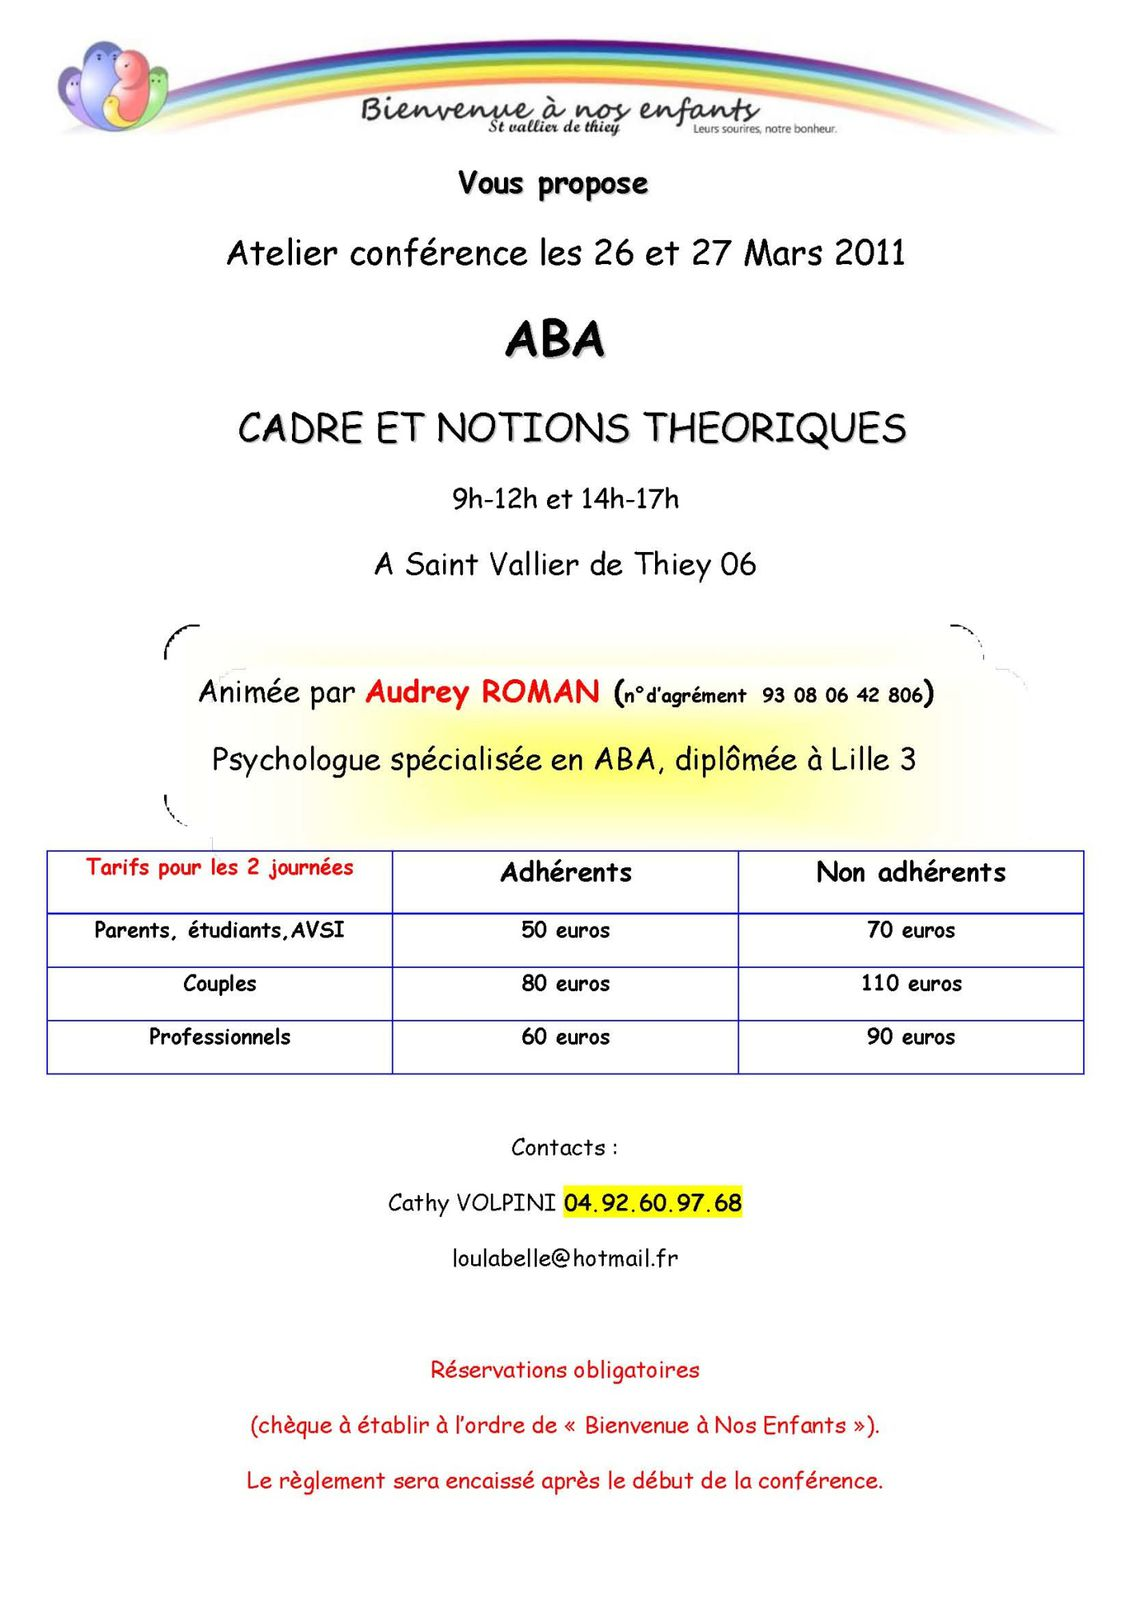 anae-ABA--CADRE-ET-NOTIONS-THEORIQUES-2010-11.jpg